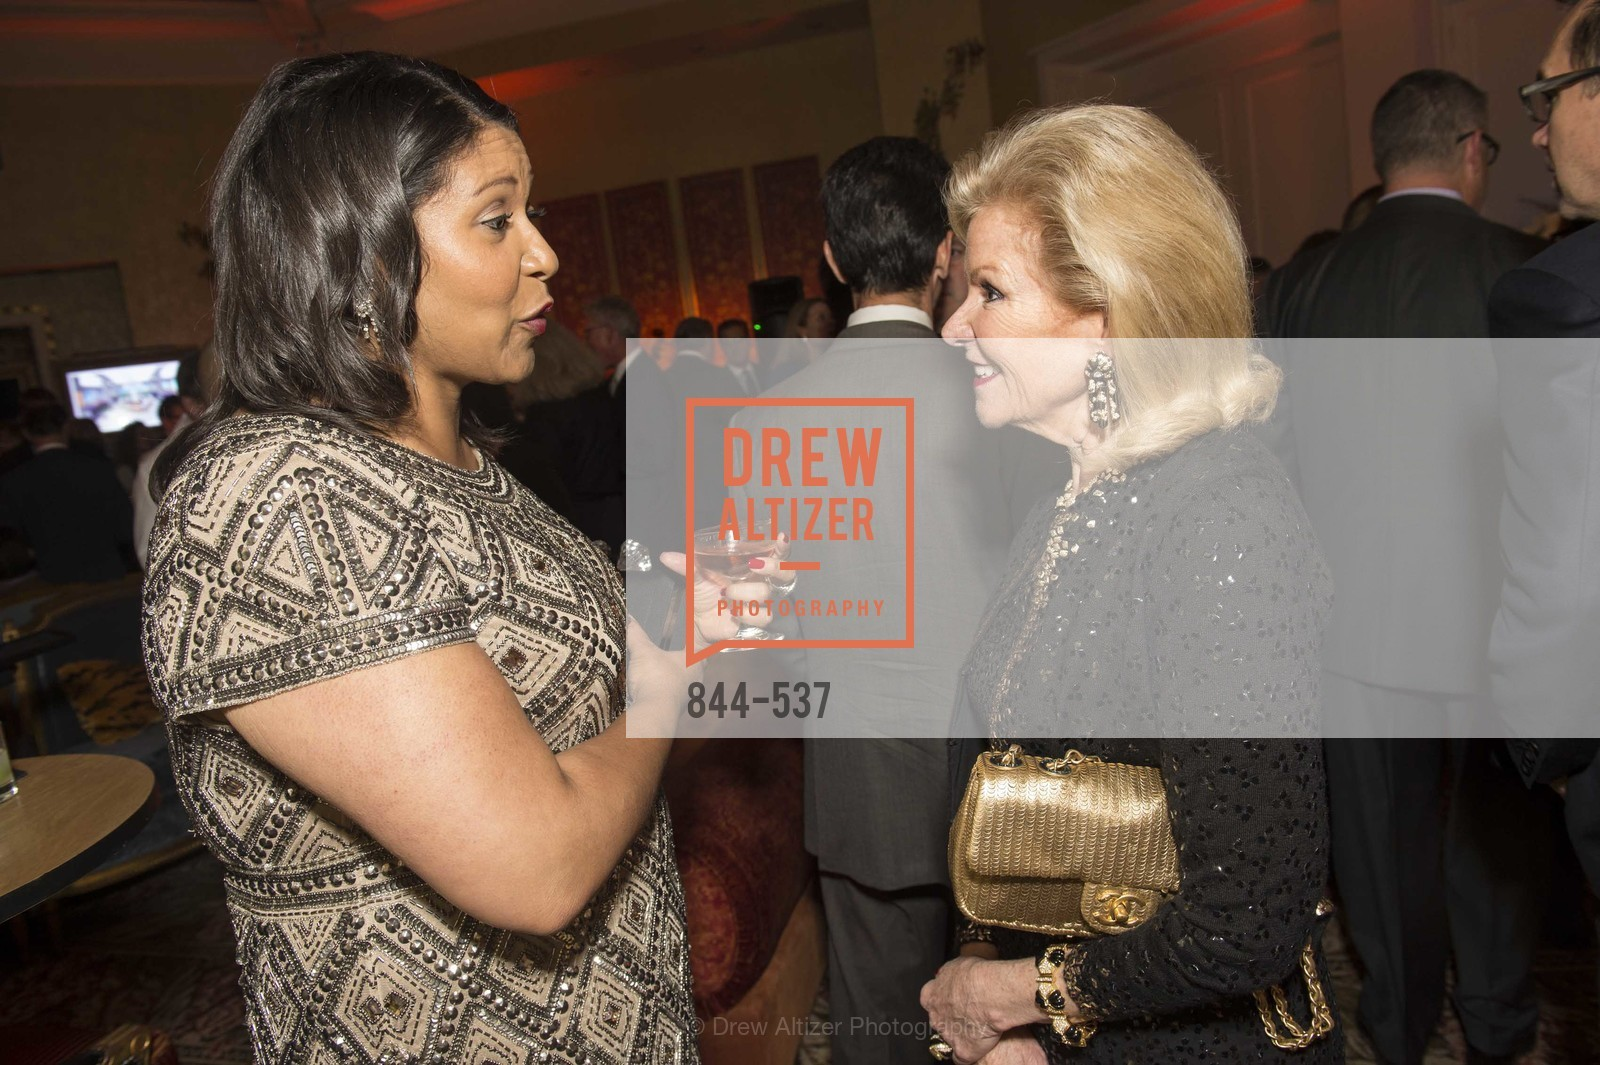 London Breed, Dede Wilsey, TOP OF THE MARK'S 75TH Anniversary Party, US, November 7th, 2014,Drew Altizer, Drew Altizer Photography, full-service event agency, private events, San Francisco photographer, photographer California